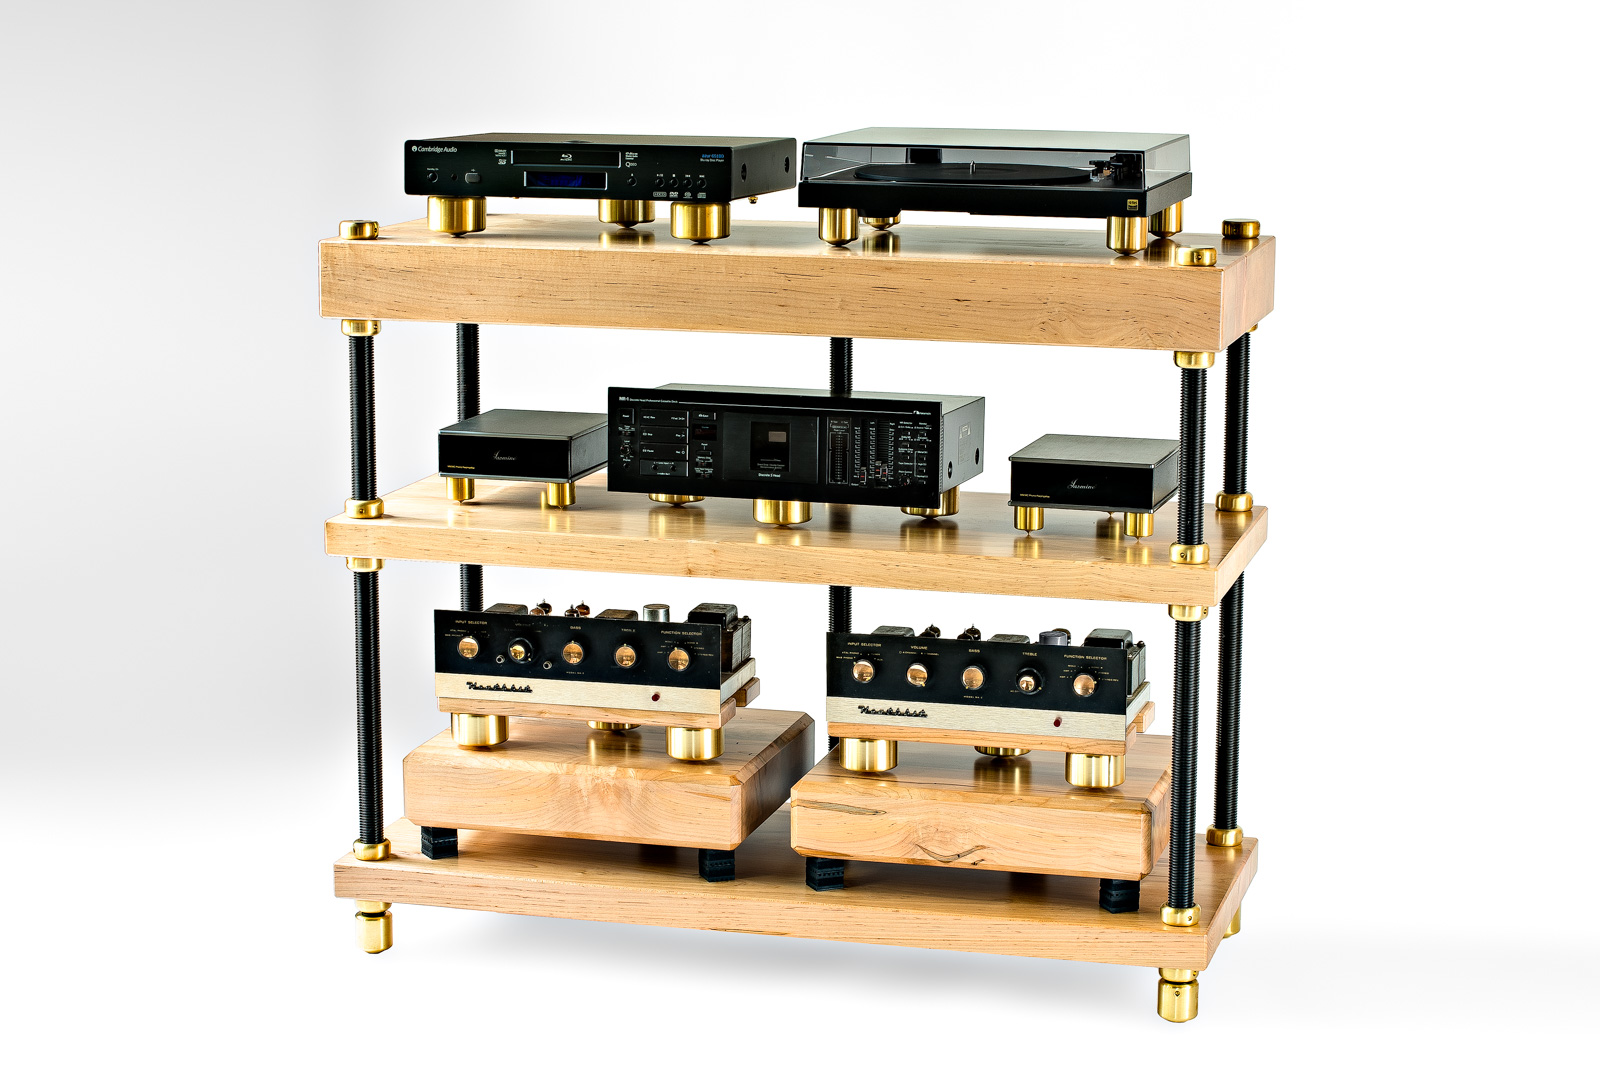 SAMSON V.5 Audio Racks : with solid 2 inch & 4 inch air-dried Ambrosia maple shelves